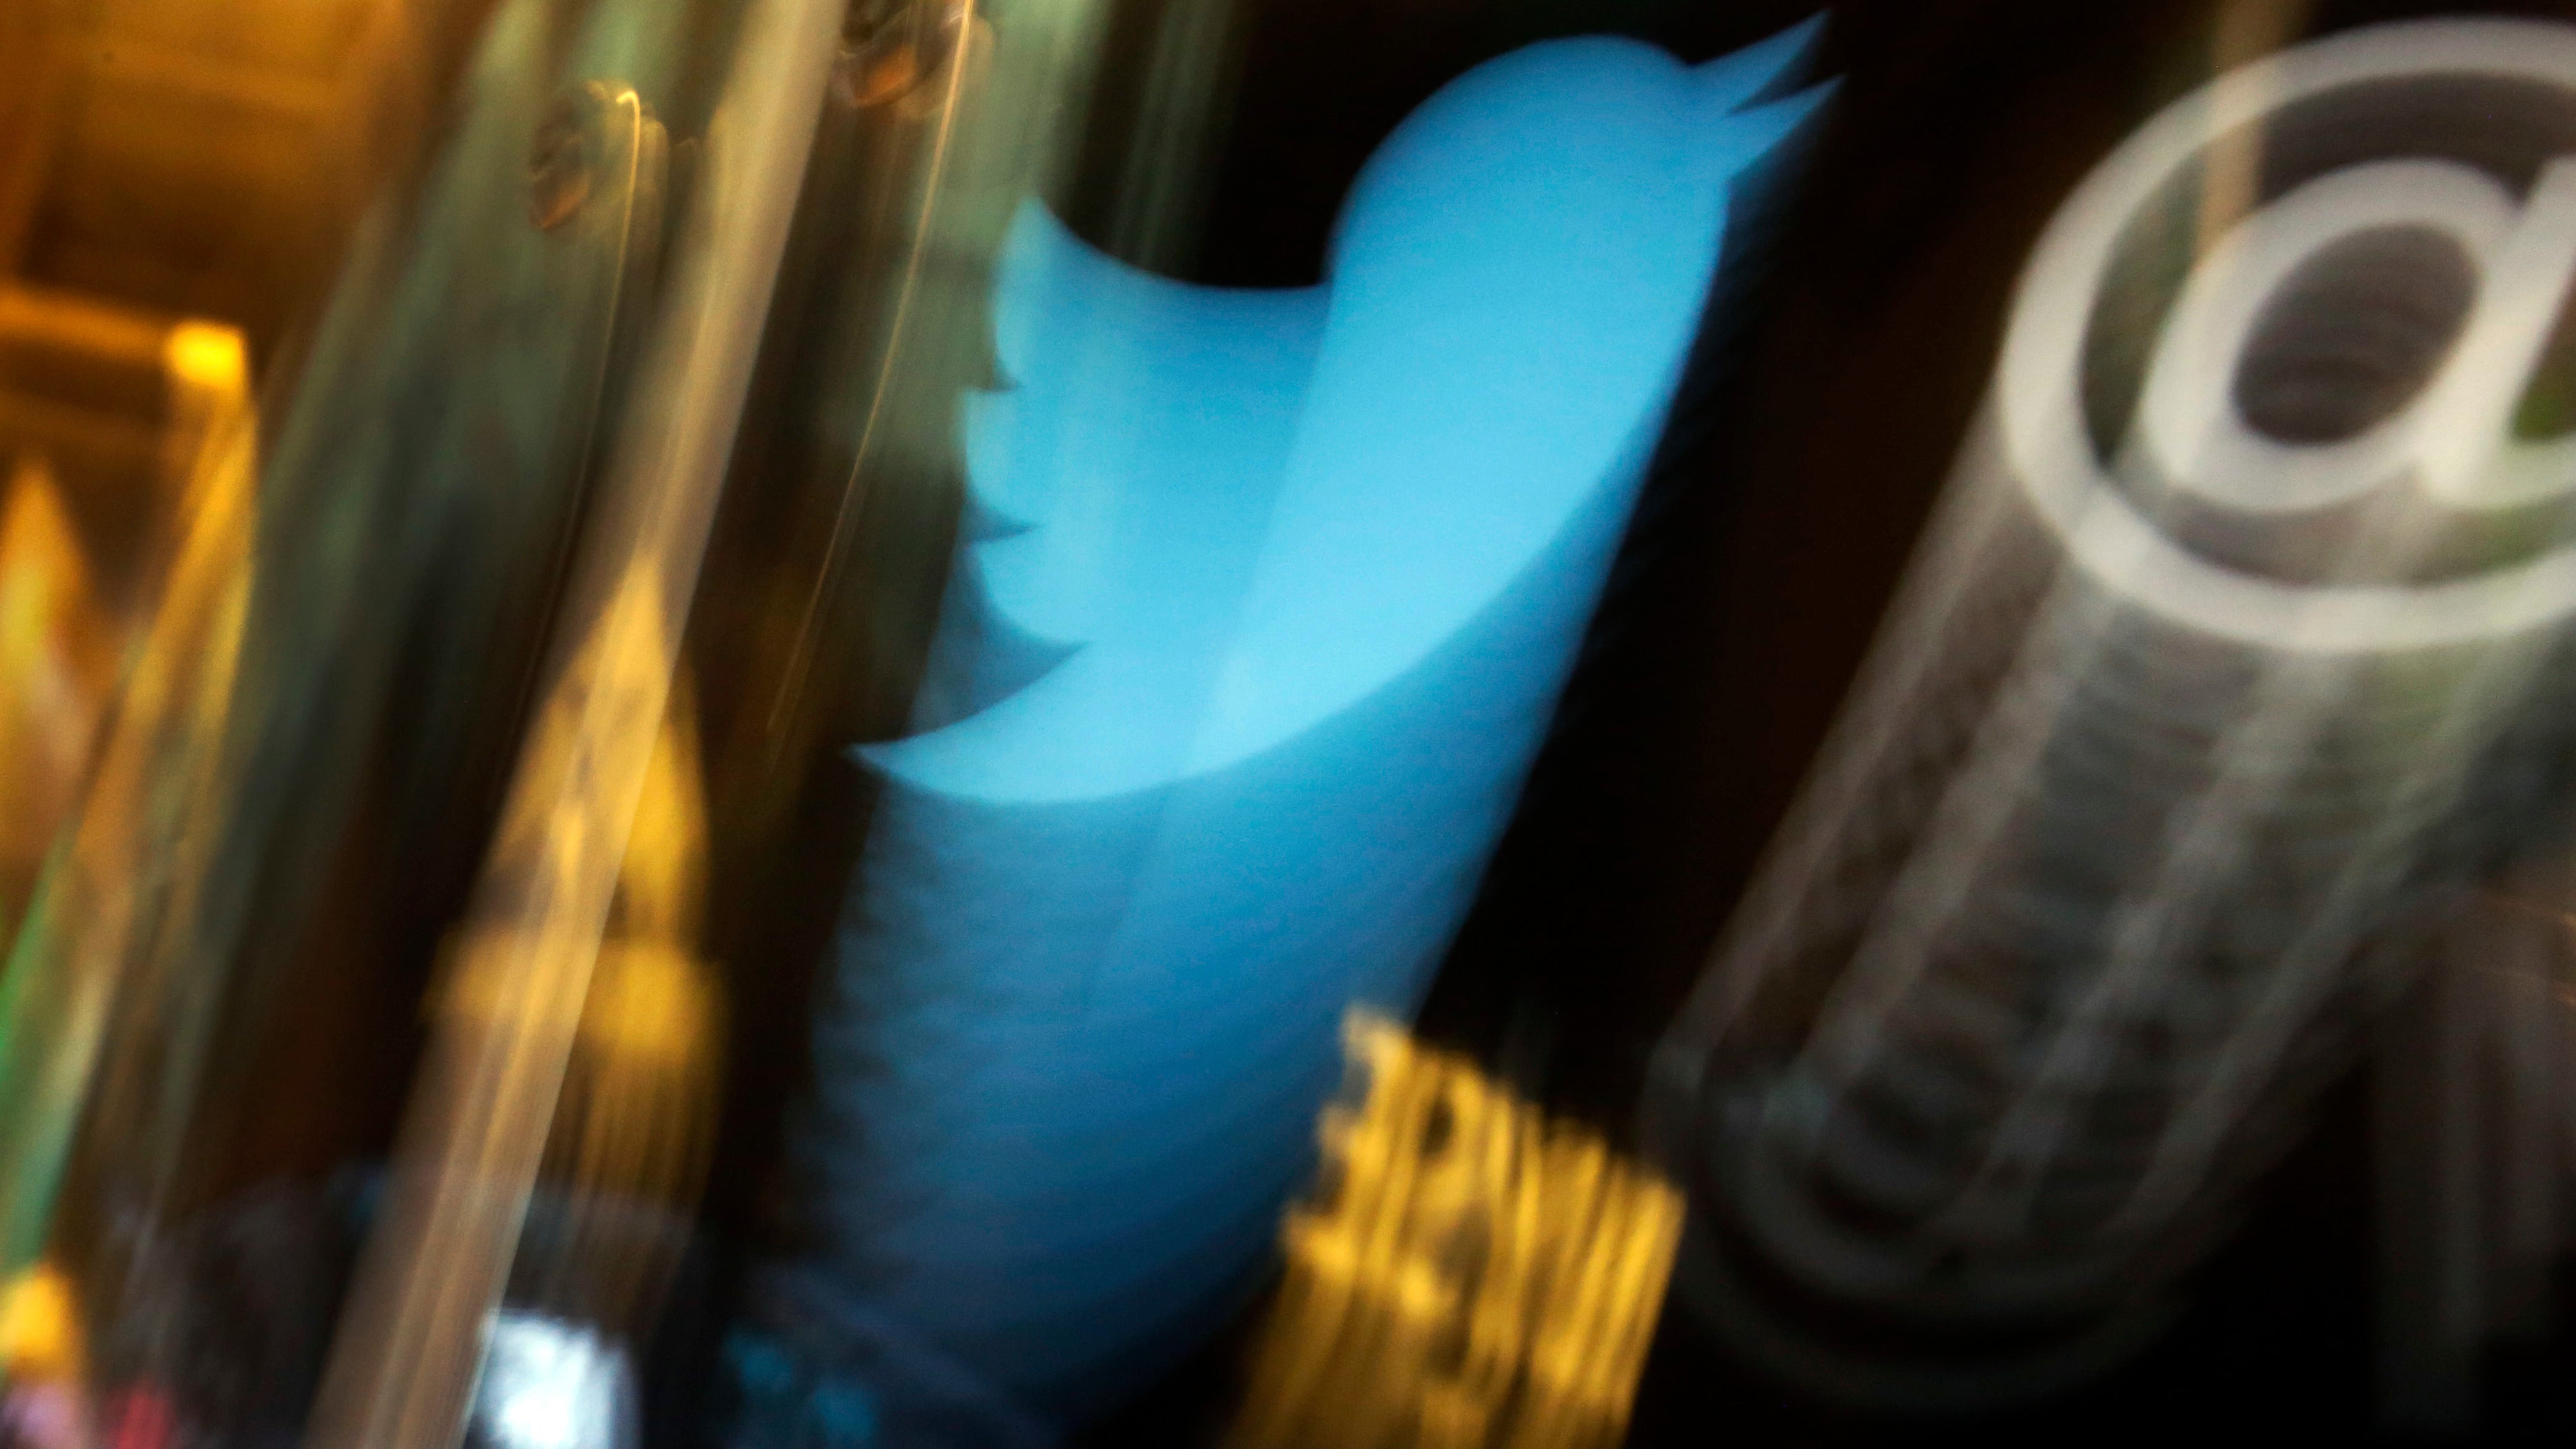 Twitter Briefly Tested A Feature Suggesting Who Users Should Unfollow